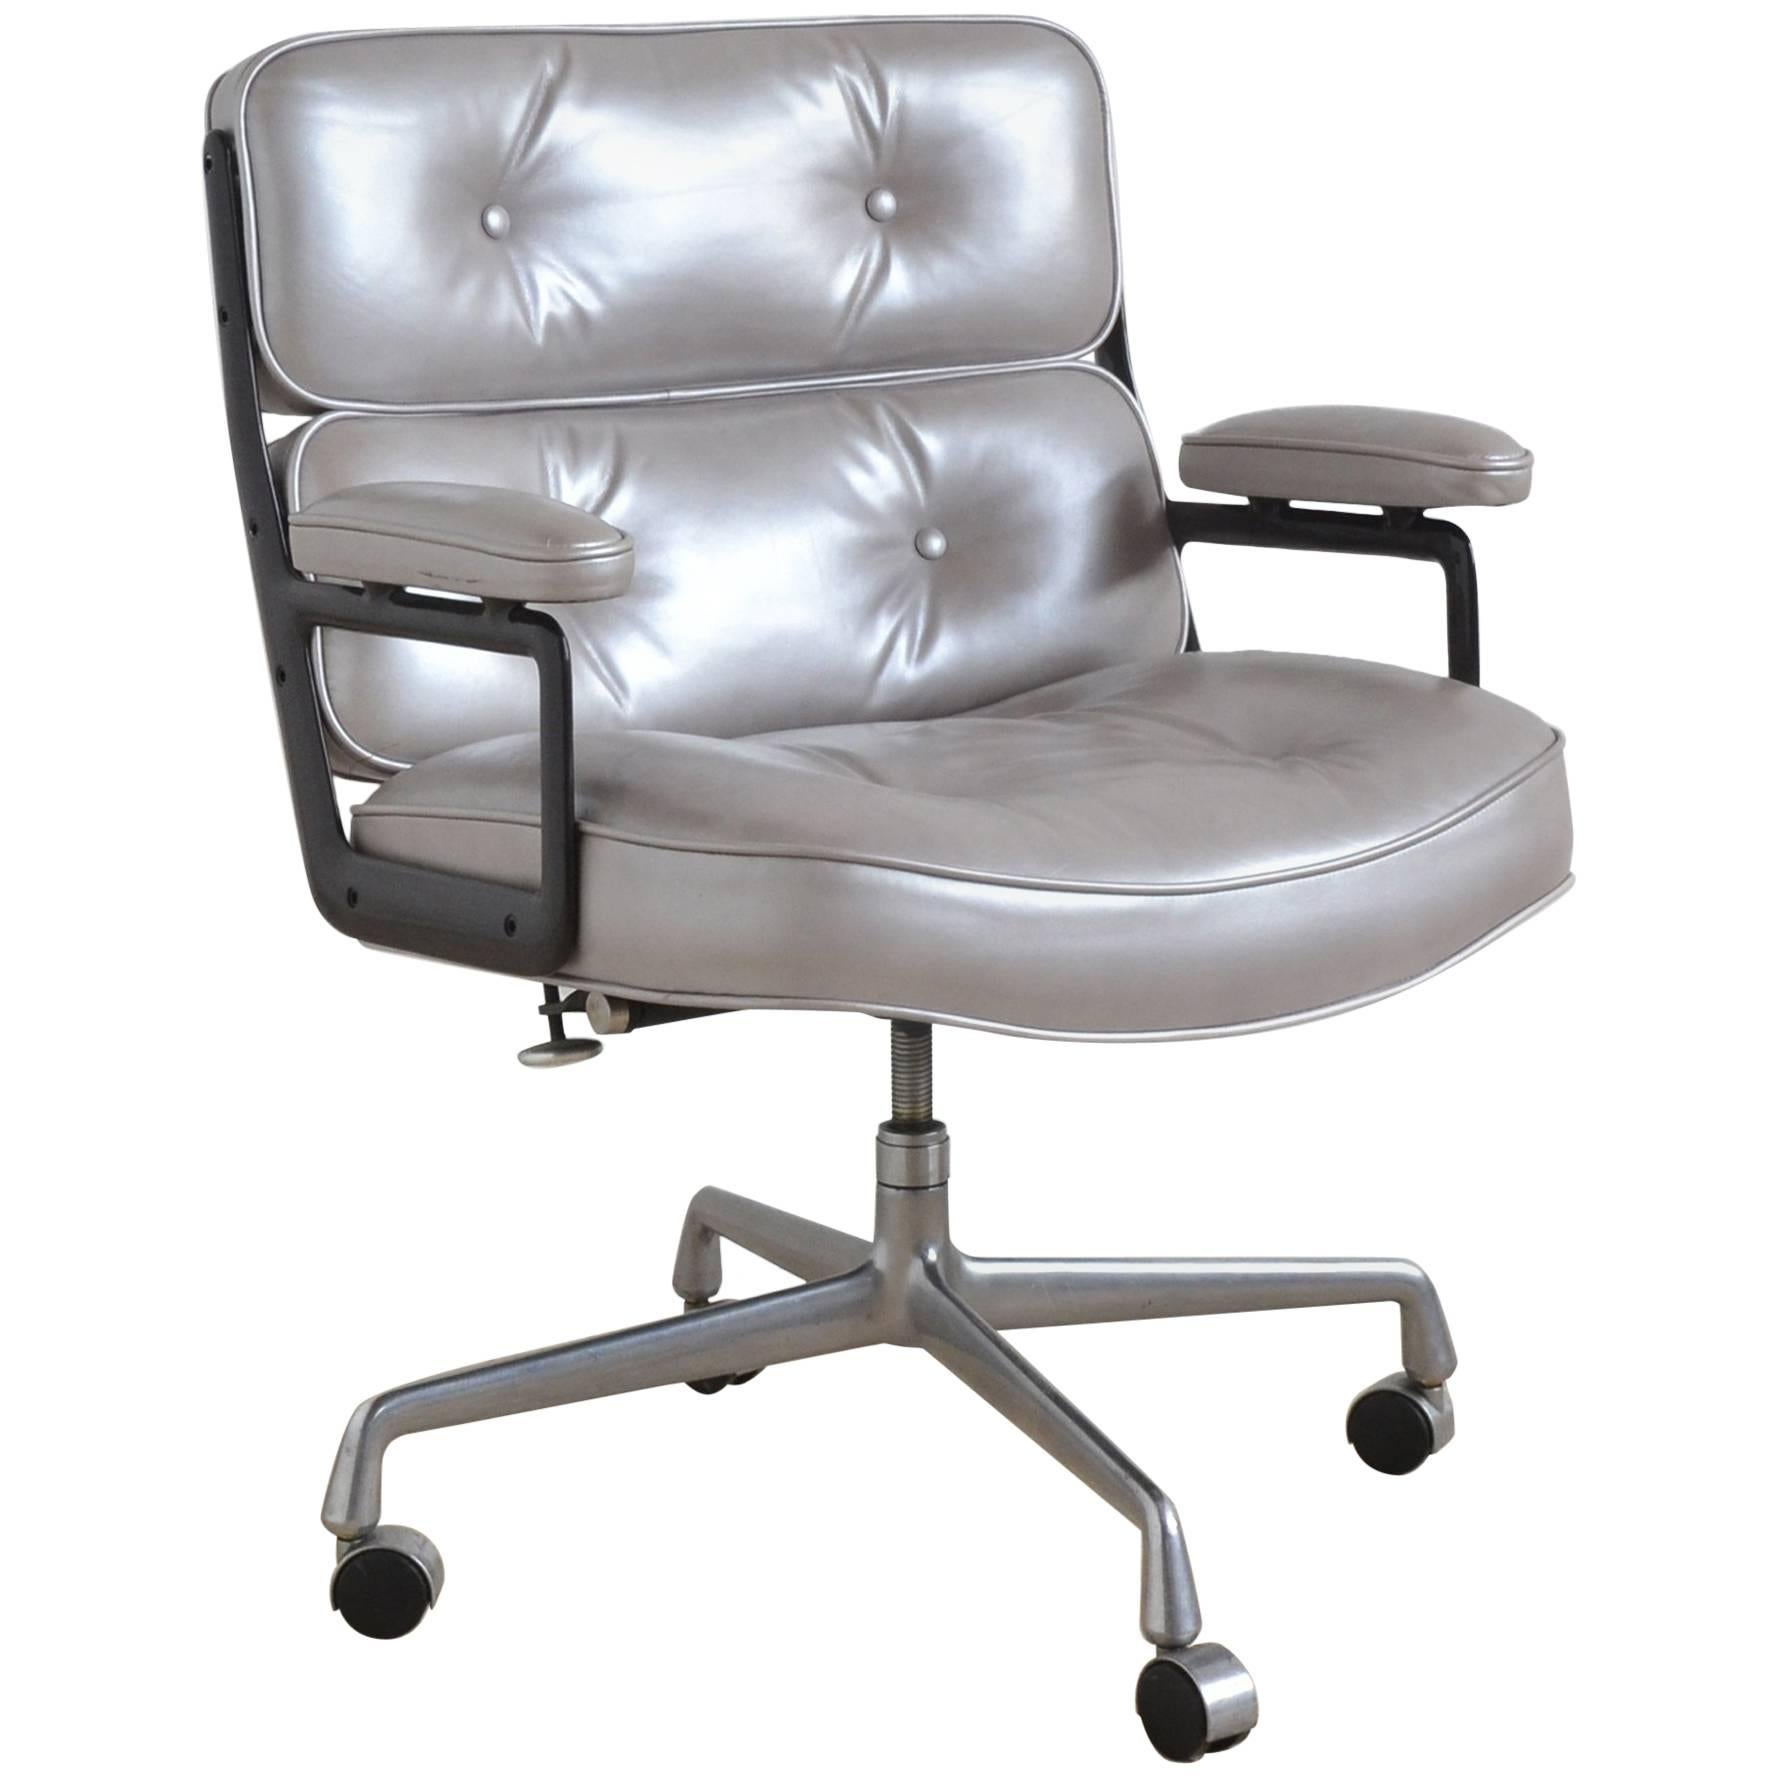 Eames Time-Life Chair by Herman Miller with Silver Leather